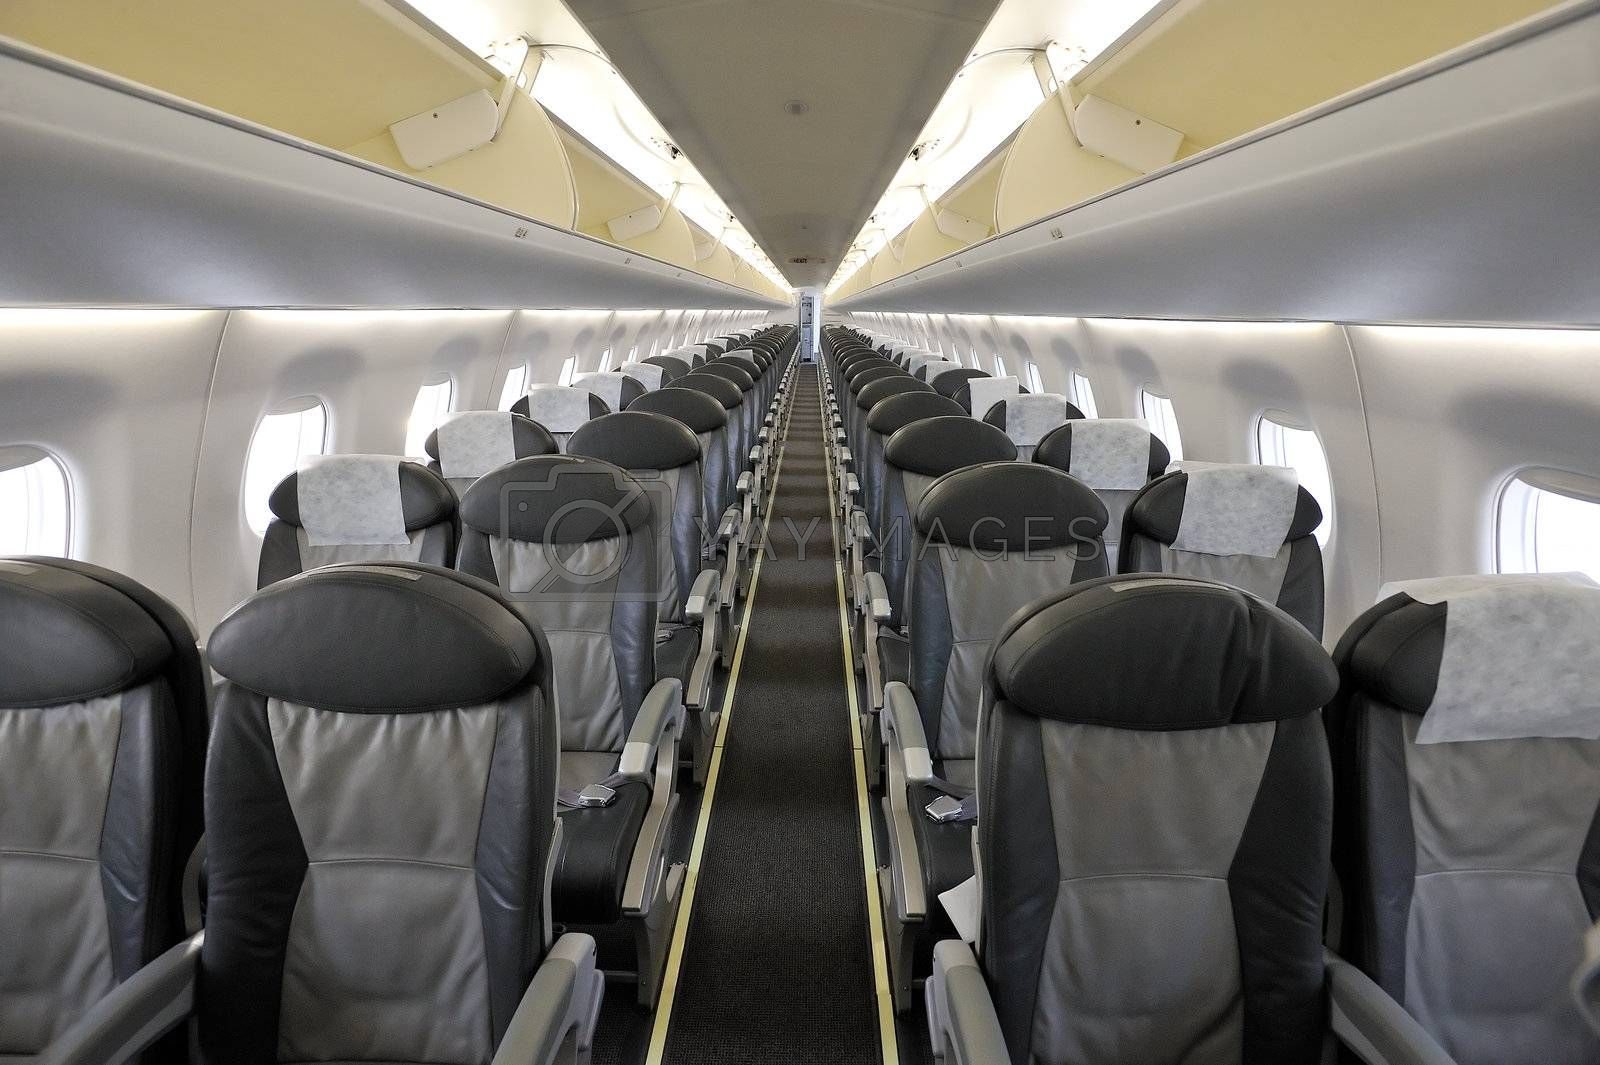 Photo of empty passenger airplane